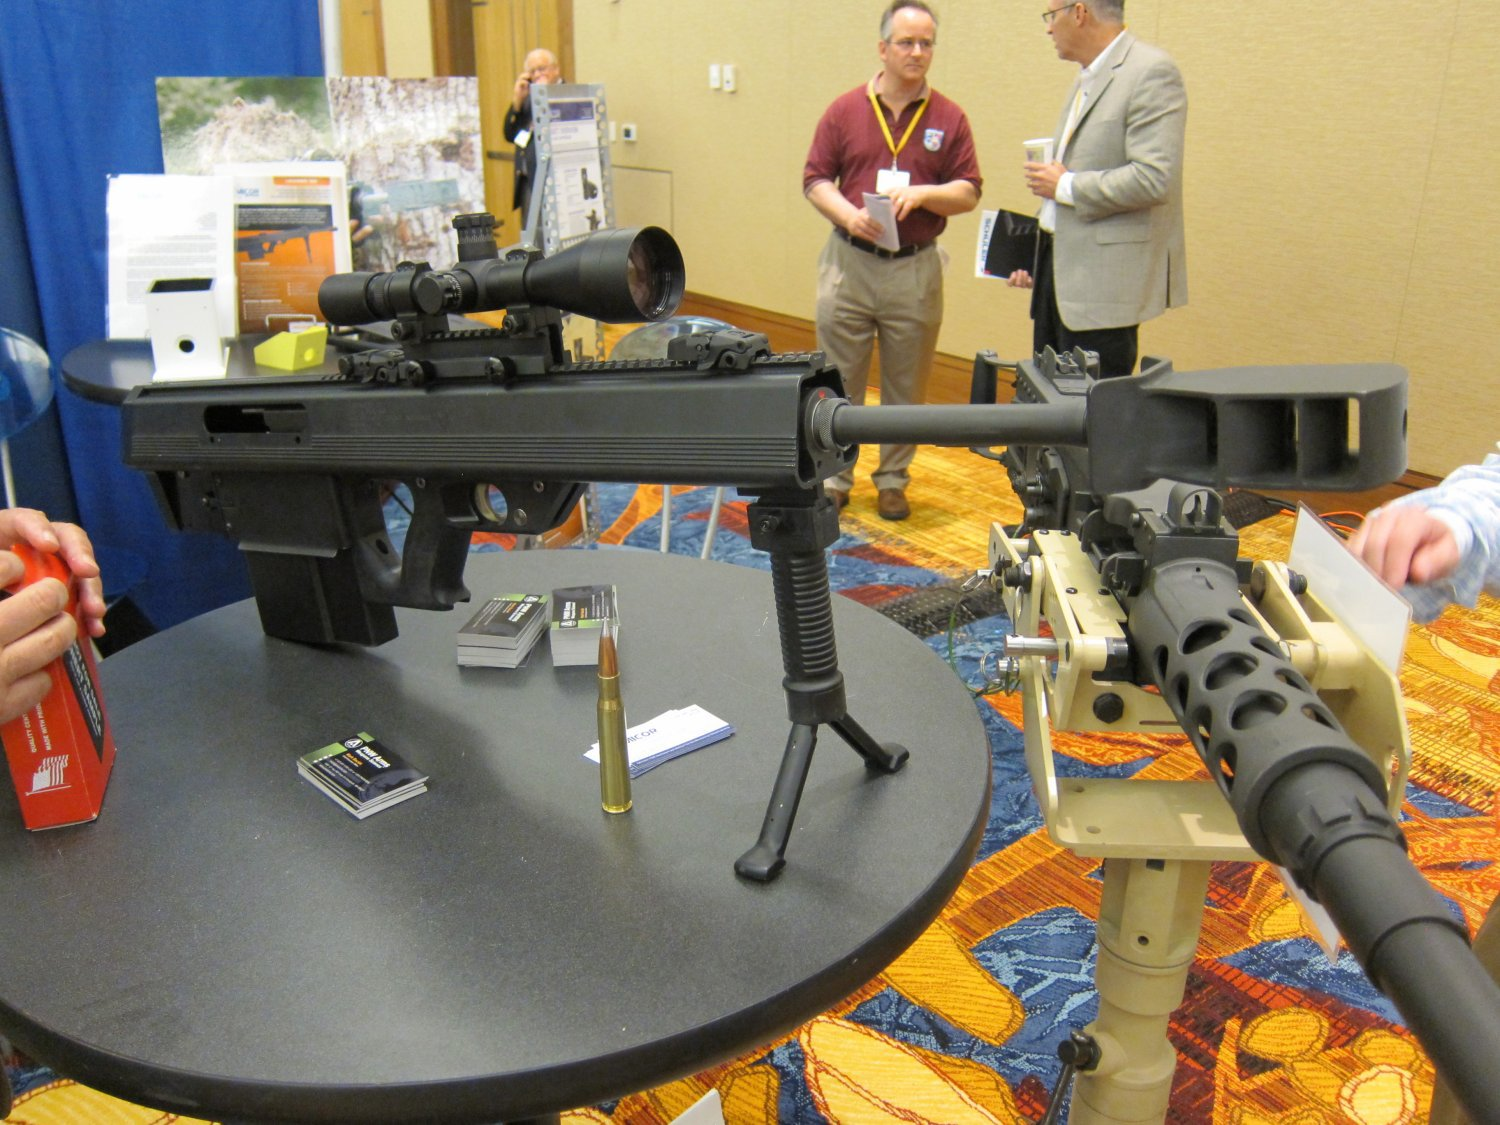 Micor Leader 50 Lightweight Bullpup Semi Auto .50 BMG Sniper Anti Materiel Rifle NDIA Small Arms Symposium 2011 DefenseReview.com DR 2 Micor Defense Leader 50 Bullpup .50 BMG Anti Materiel/Sniper Rifle Goes into Production for Civilian Tactical Shooters: Shortest, Lightest .50 Caliber Sniper Rifle Ever?